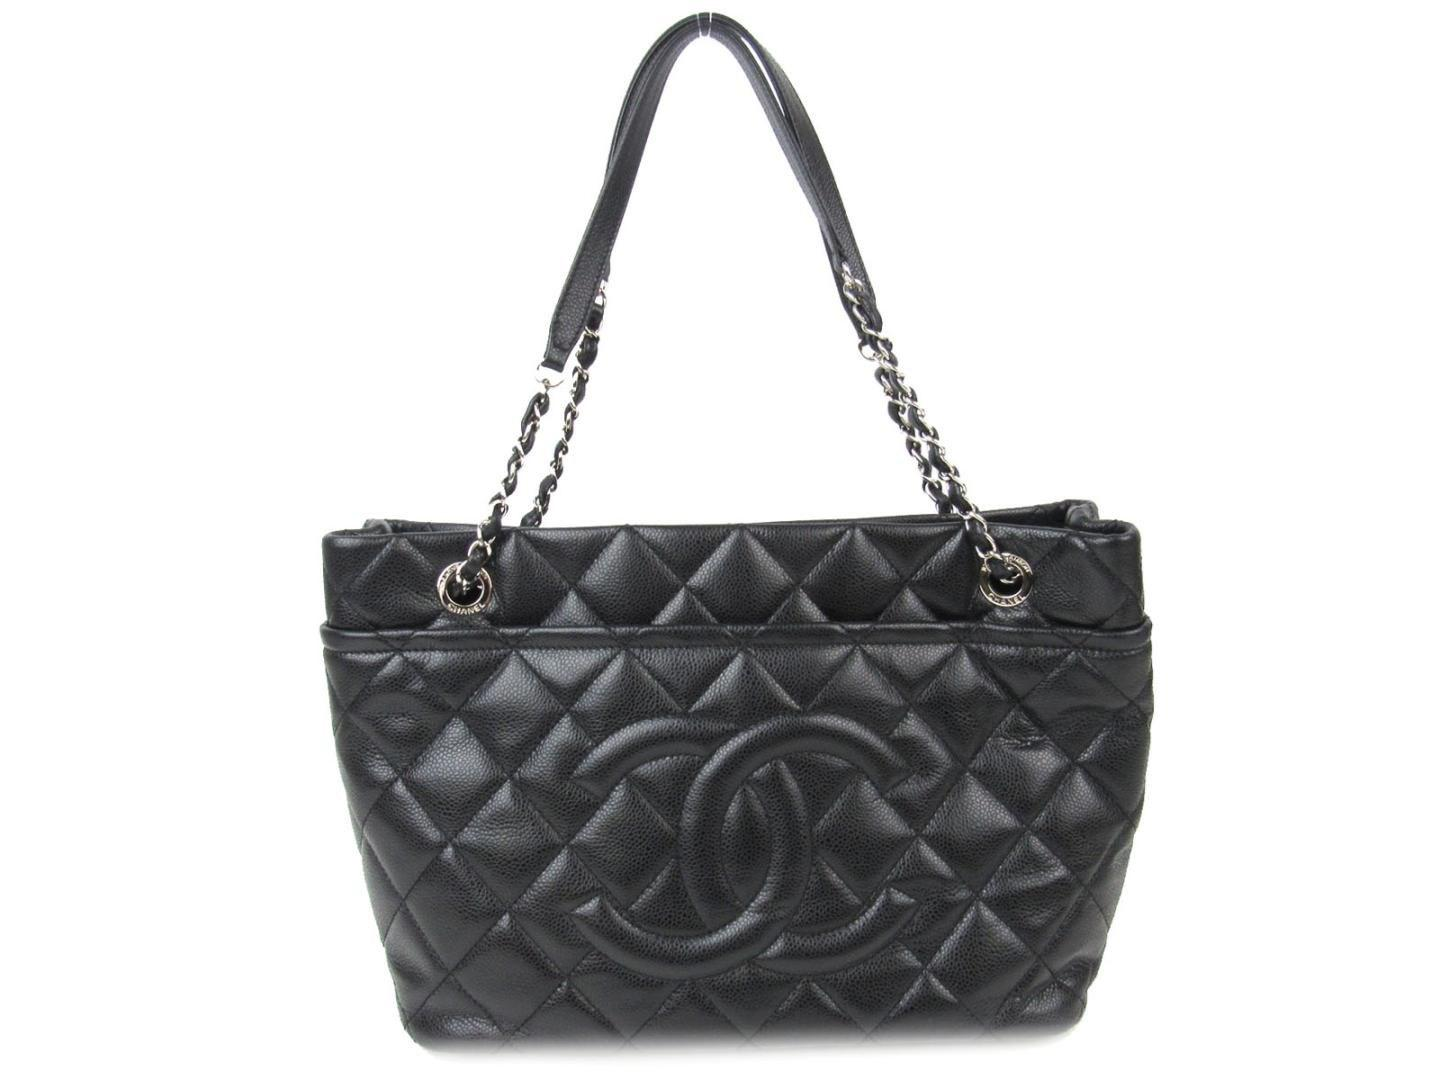 Lyst - Chanel Cc Shoulder Bag A 67291 Caviar Skin Chain Tote Leather ... 7722bf5df3ba1